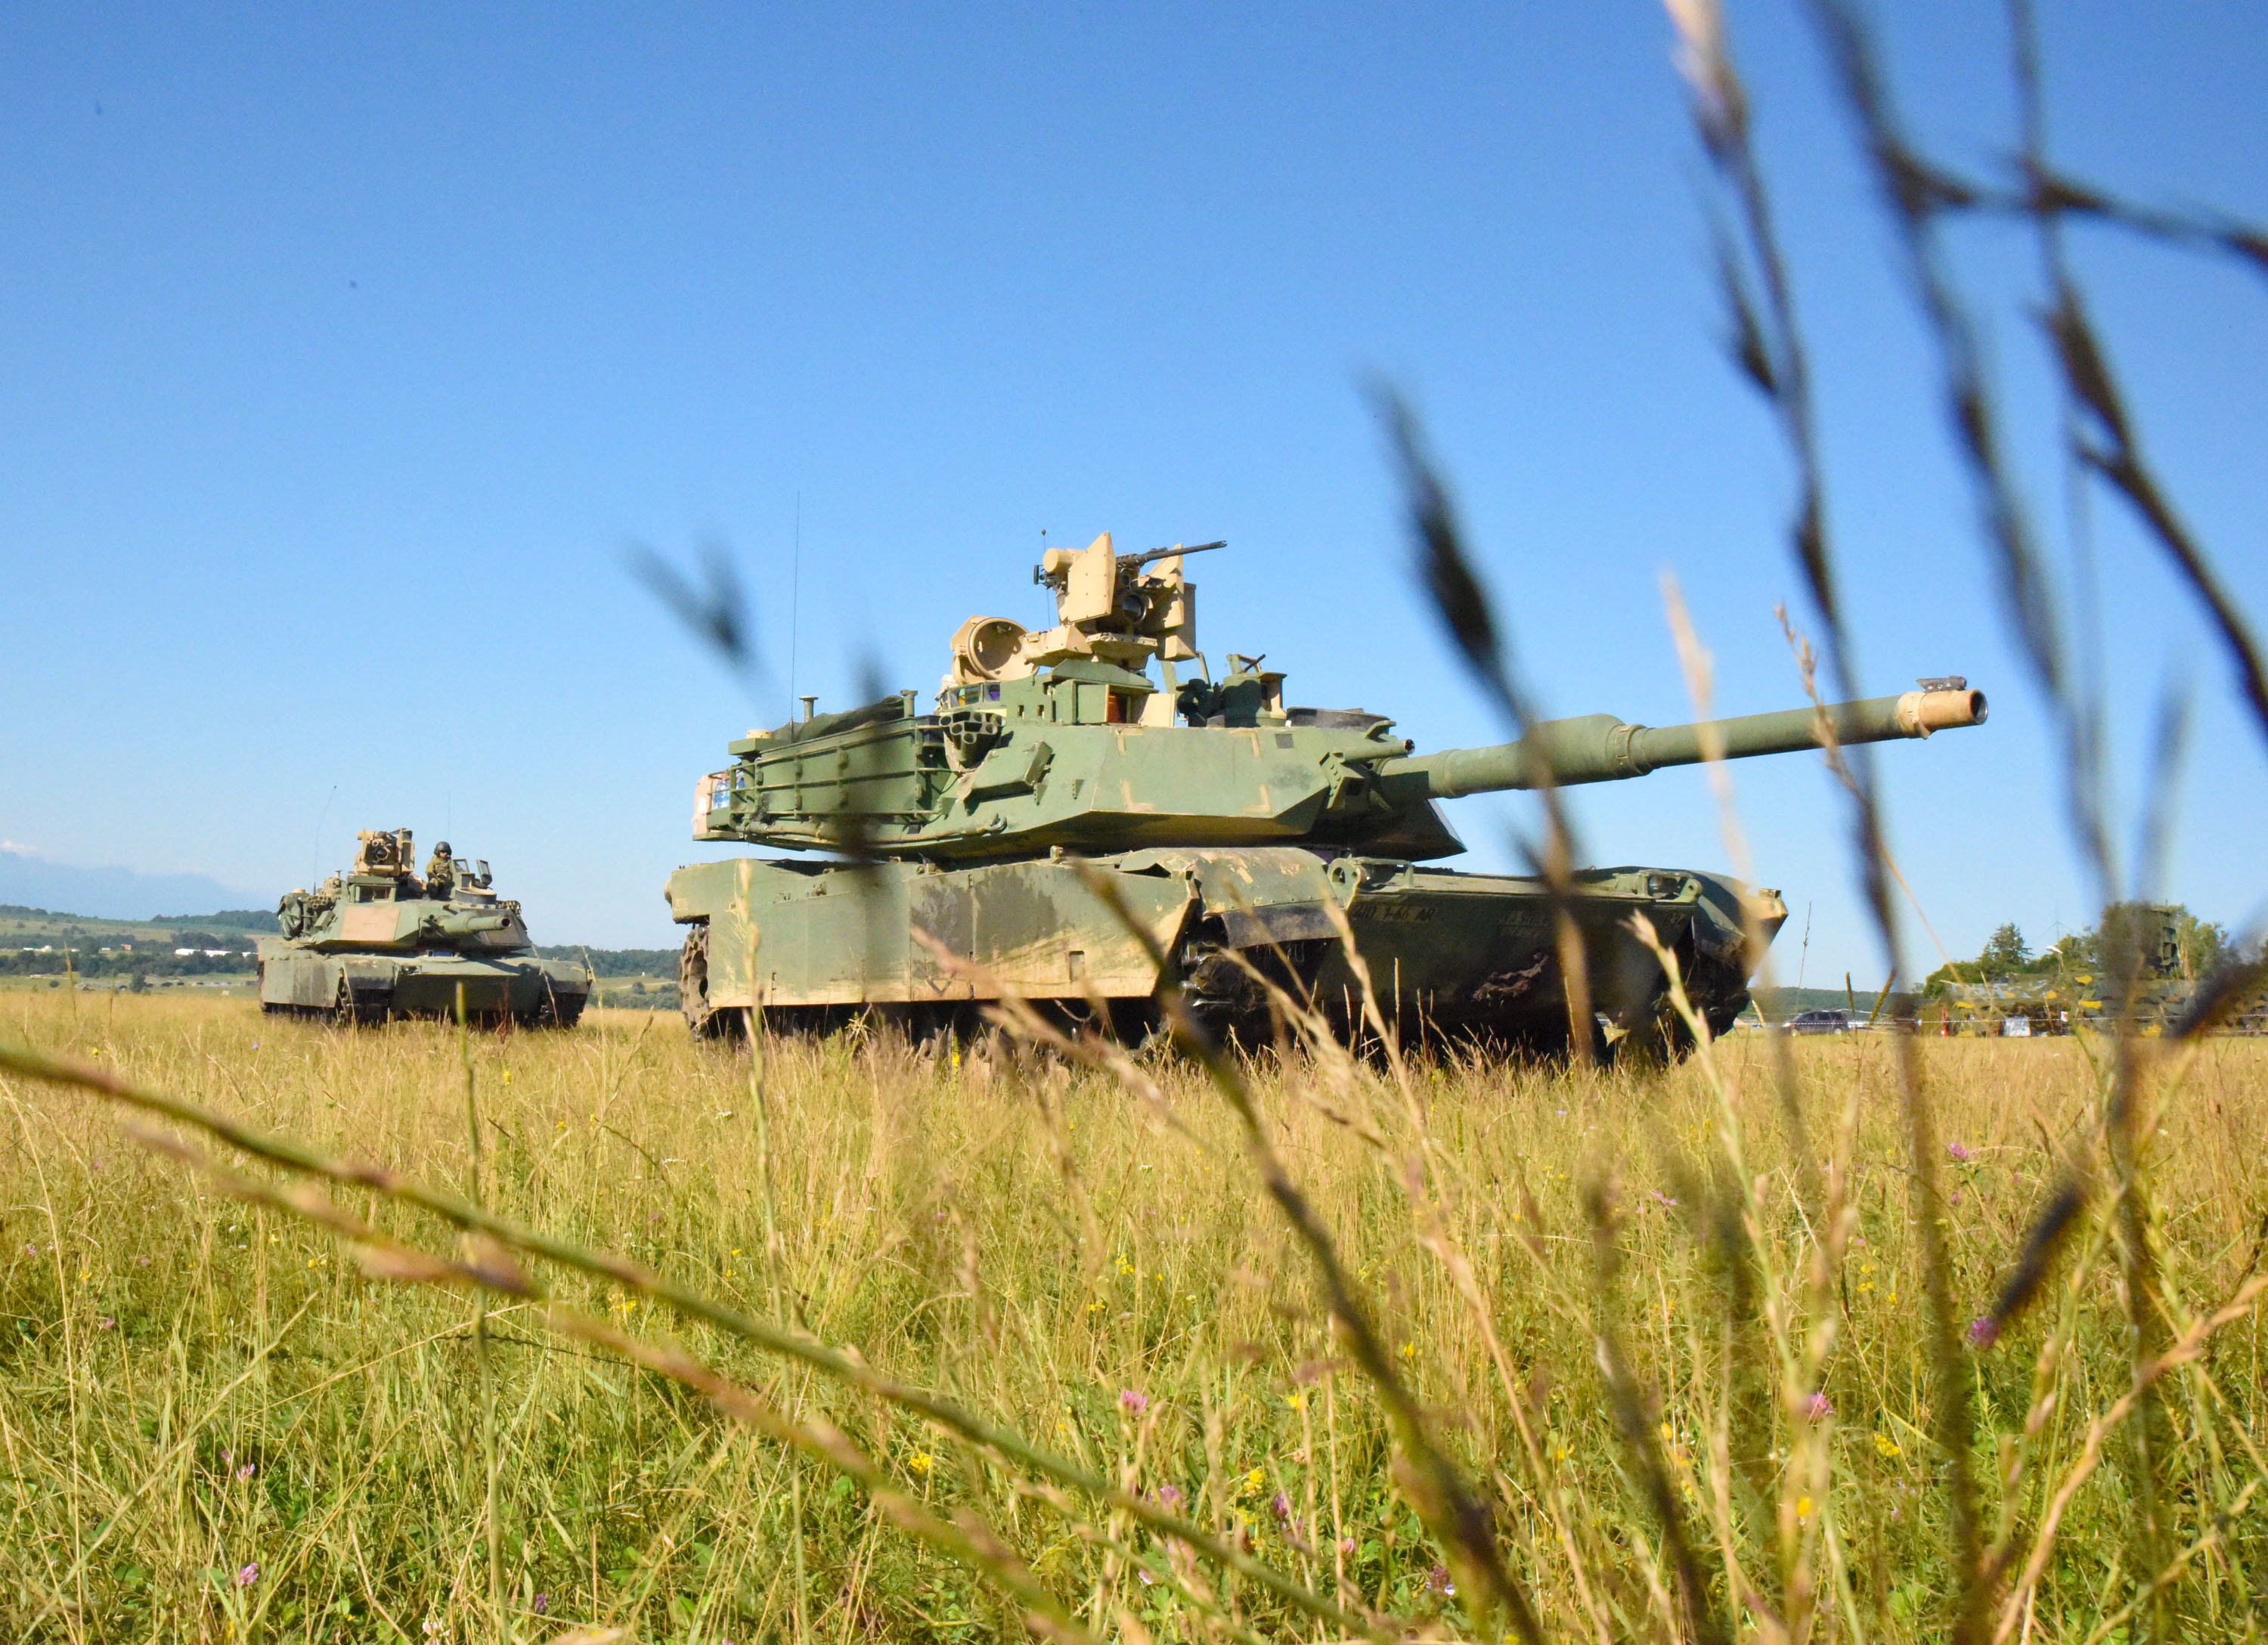 CINCU, Romania - U.S. Army Soldiers of 1st battalion, 66th armored regiment, 3rdArmored Brigade Combat Team setup their M1 Abram Tanks during Getica Saber 17, July 10, 2017. Getica Saber 17 is a U.S-led fire support coordination exercise and combined arms live fire exercise that incorporates six Allied and partner nations with more than 4,000 Soldiers. Getica Saber 17 runs concurrent with Saber Guardian 17, a U.S. Army Europe-led, multinational exercise that spans across Bulgaria, Hungary and Romania with more than 25,000 service members from 22 Allied and partner nations.